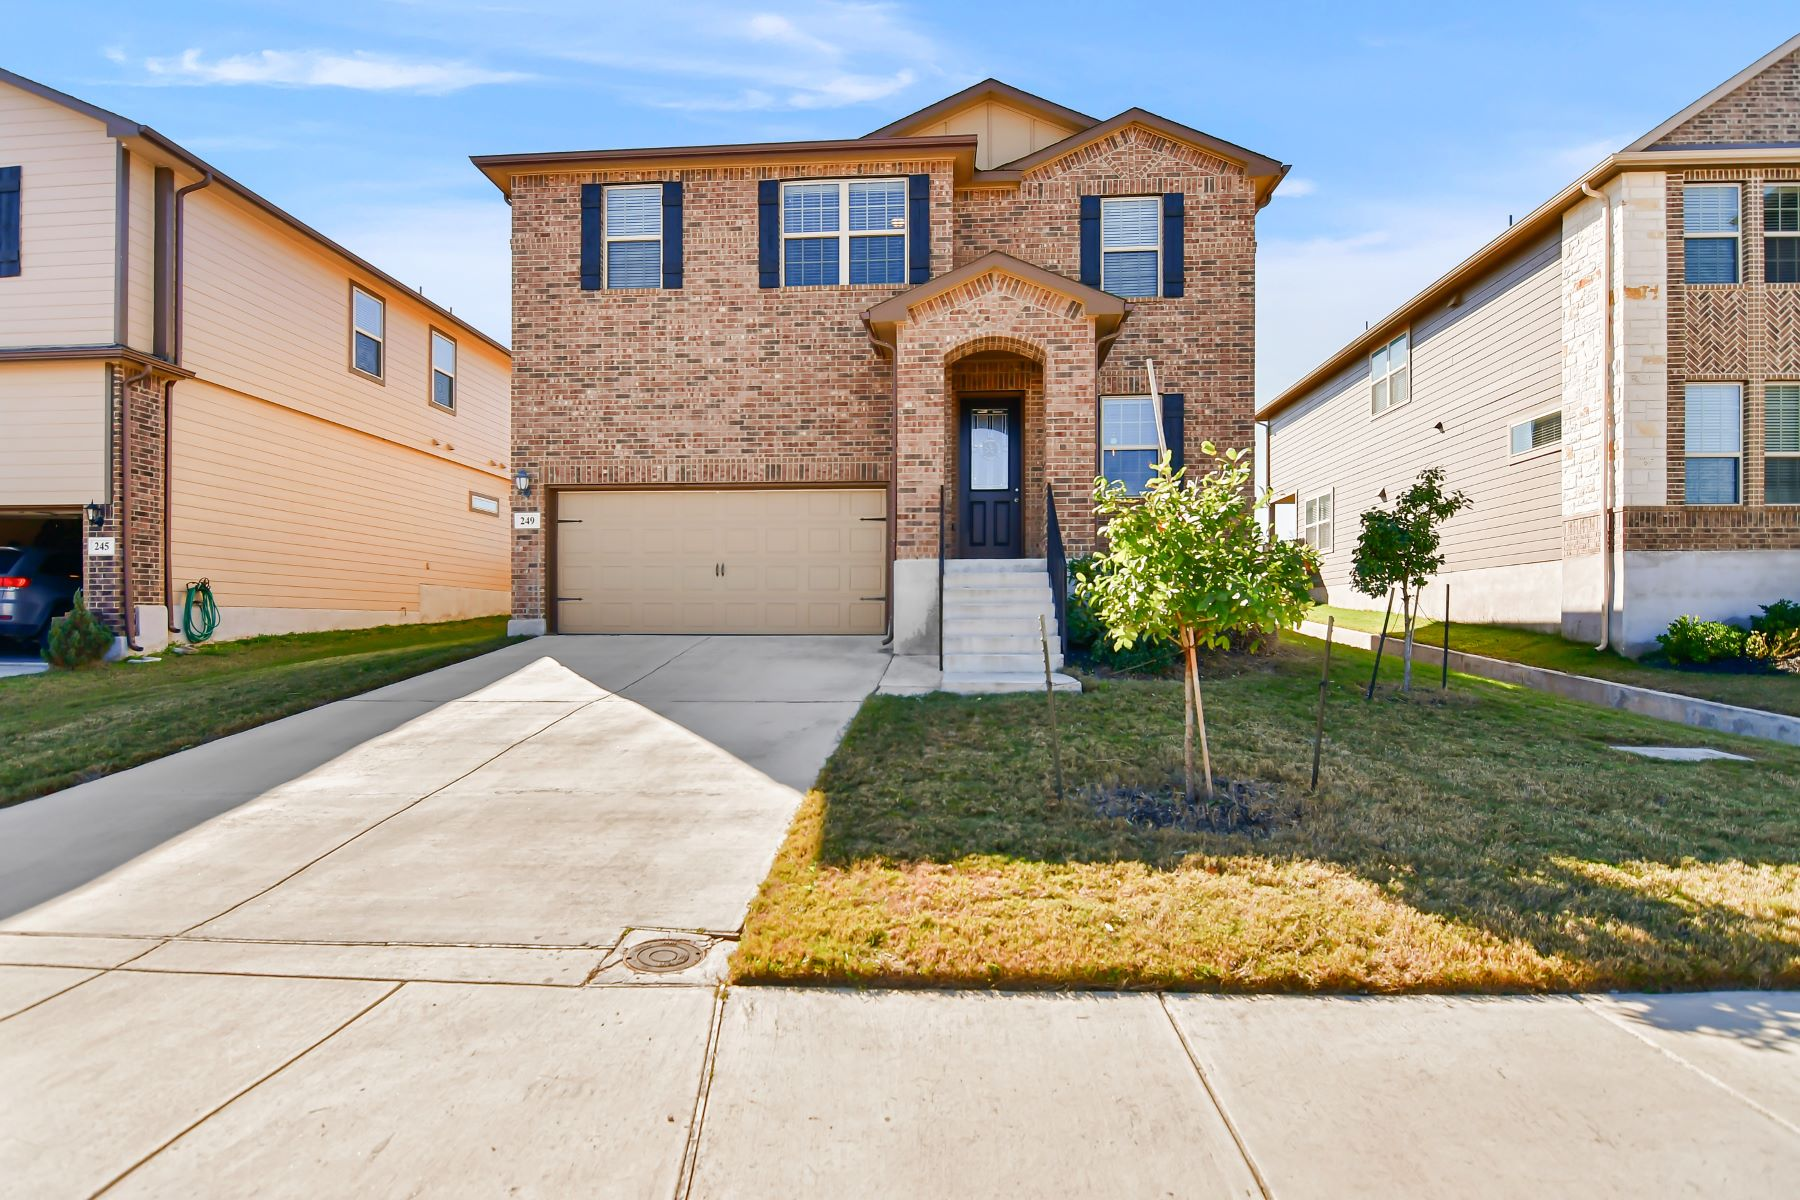 Single Family Homes for Active at Immaculate Two Story in Cibolo Vista 249 Prairie Vista Cibolo, Texas 78108 United States